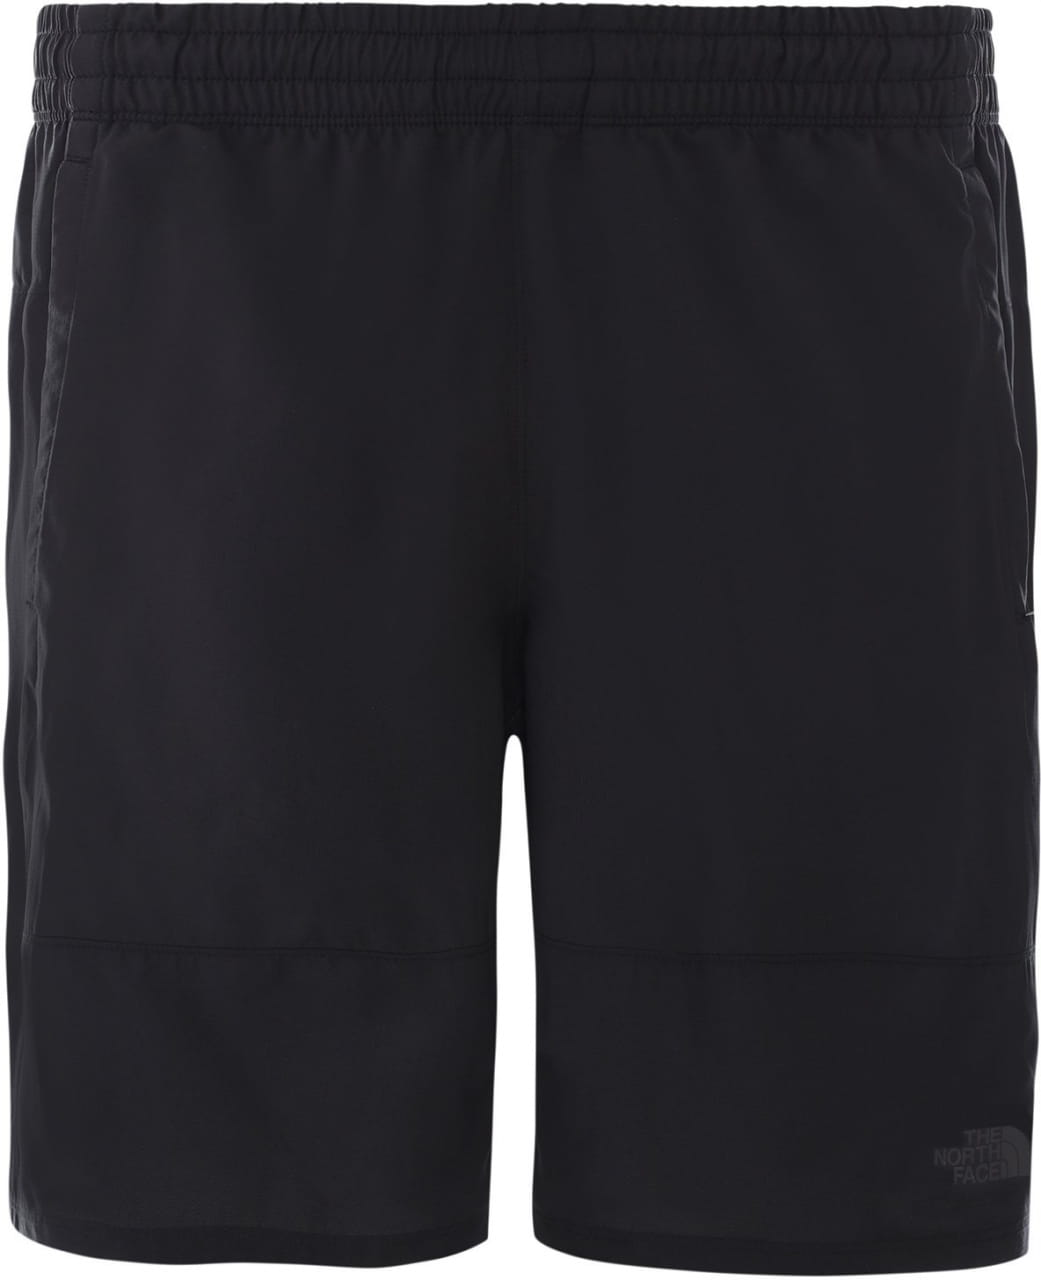 Shorts The North Face Men's Active Trail Linerless Shorts